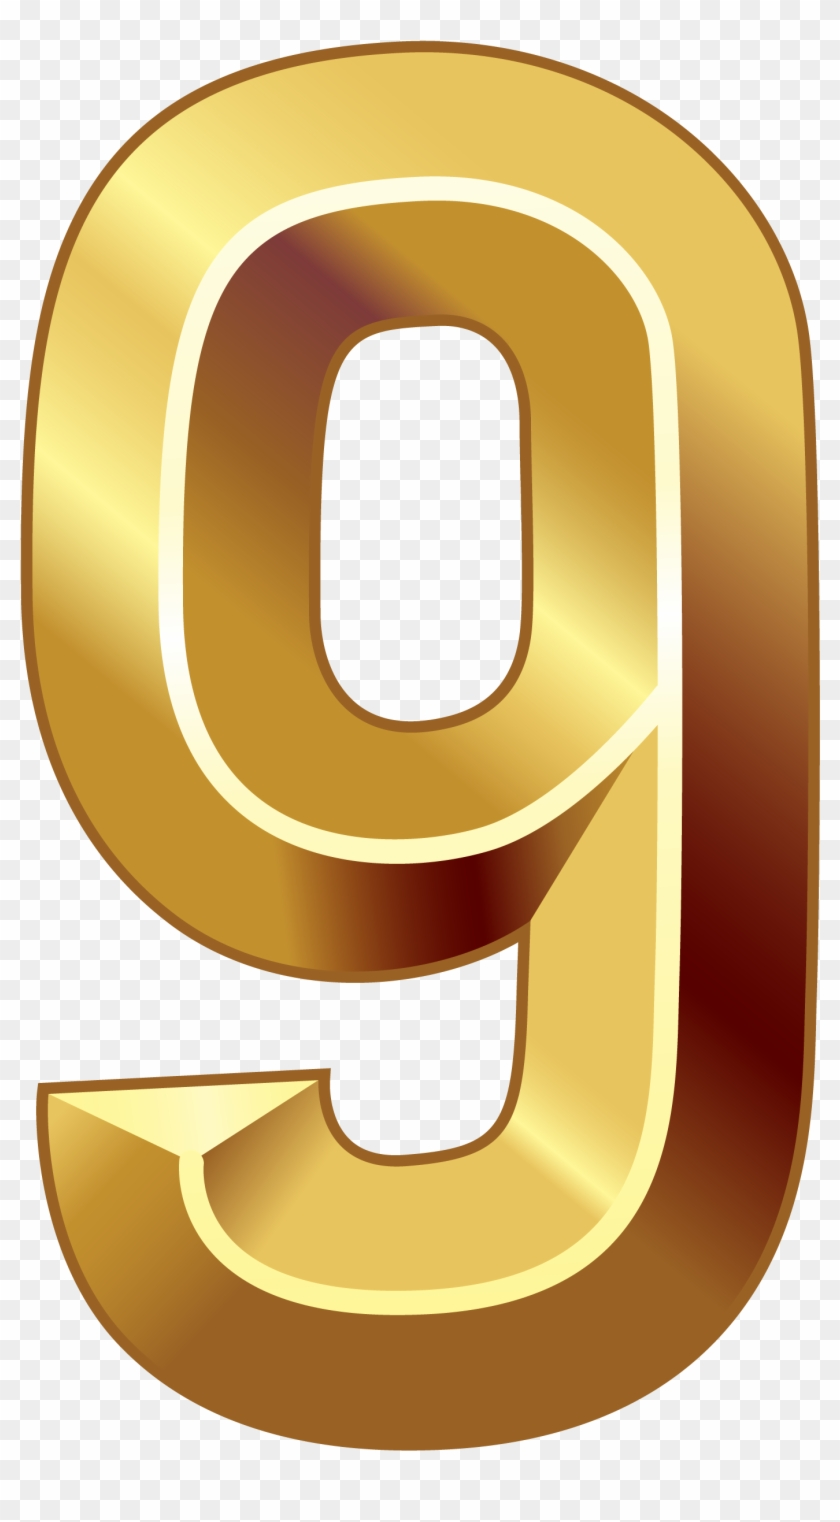 Gold Nine Png Image Gallery Yopriceville High Ⓒ - Golden Number 0 Png Clipart #3714175